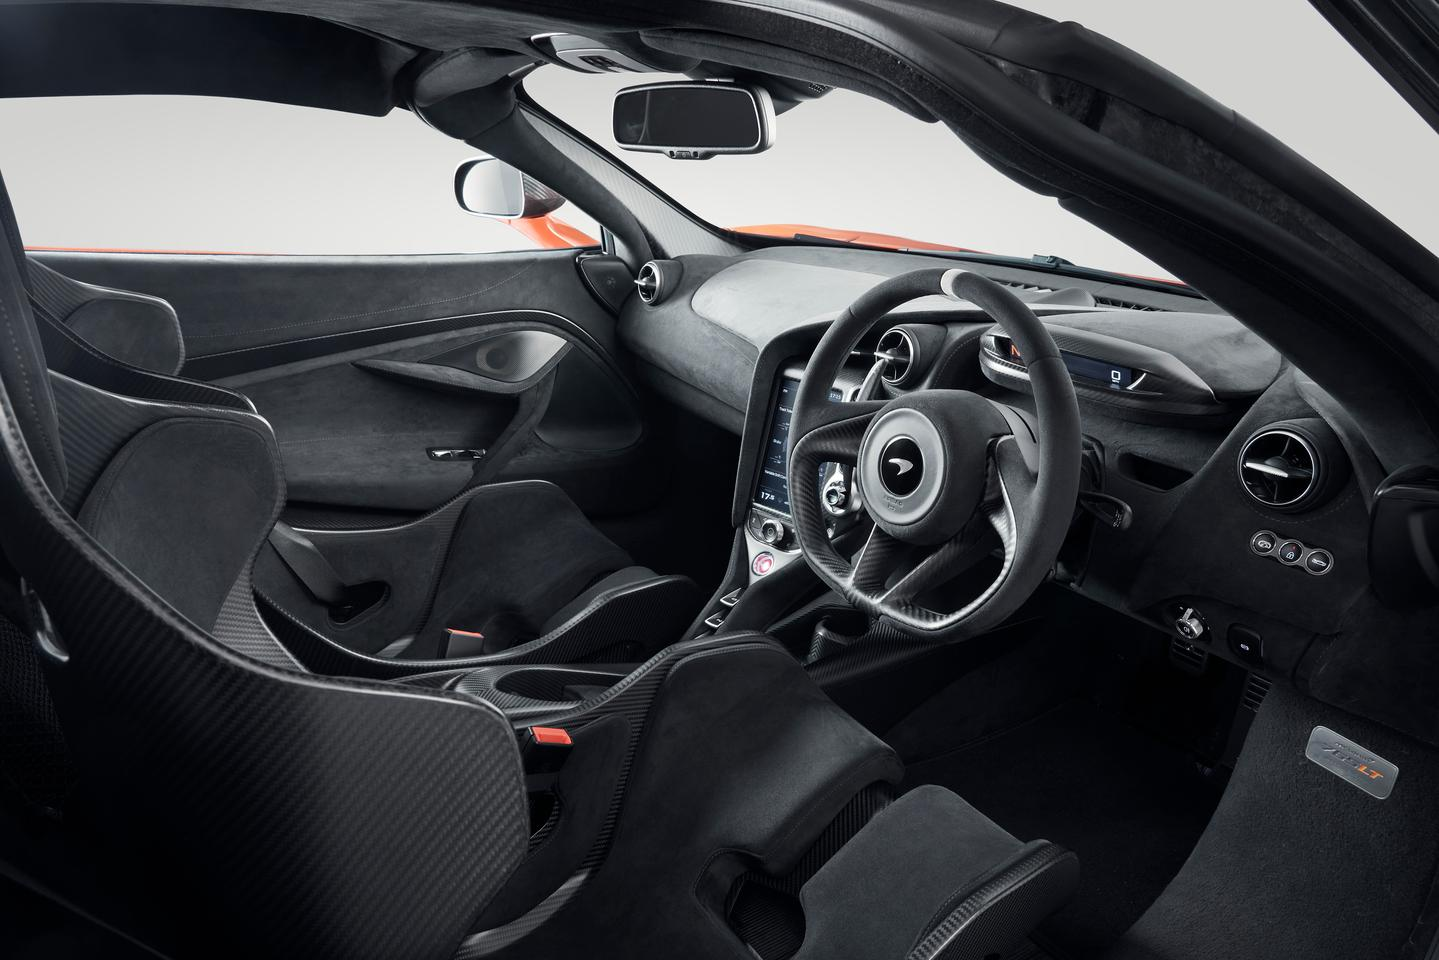 A typically stripped-back McLaren cabin with the addition of carbon racing seats